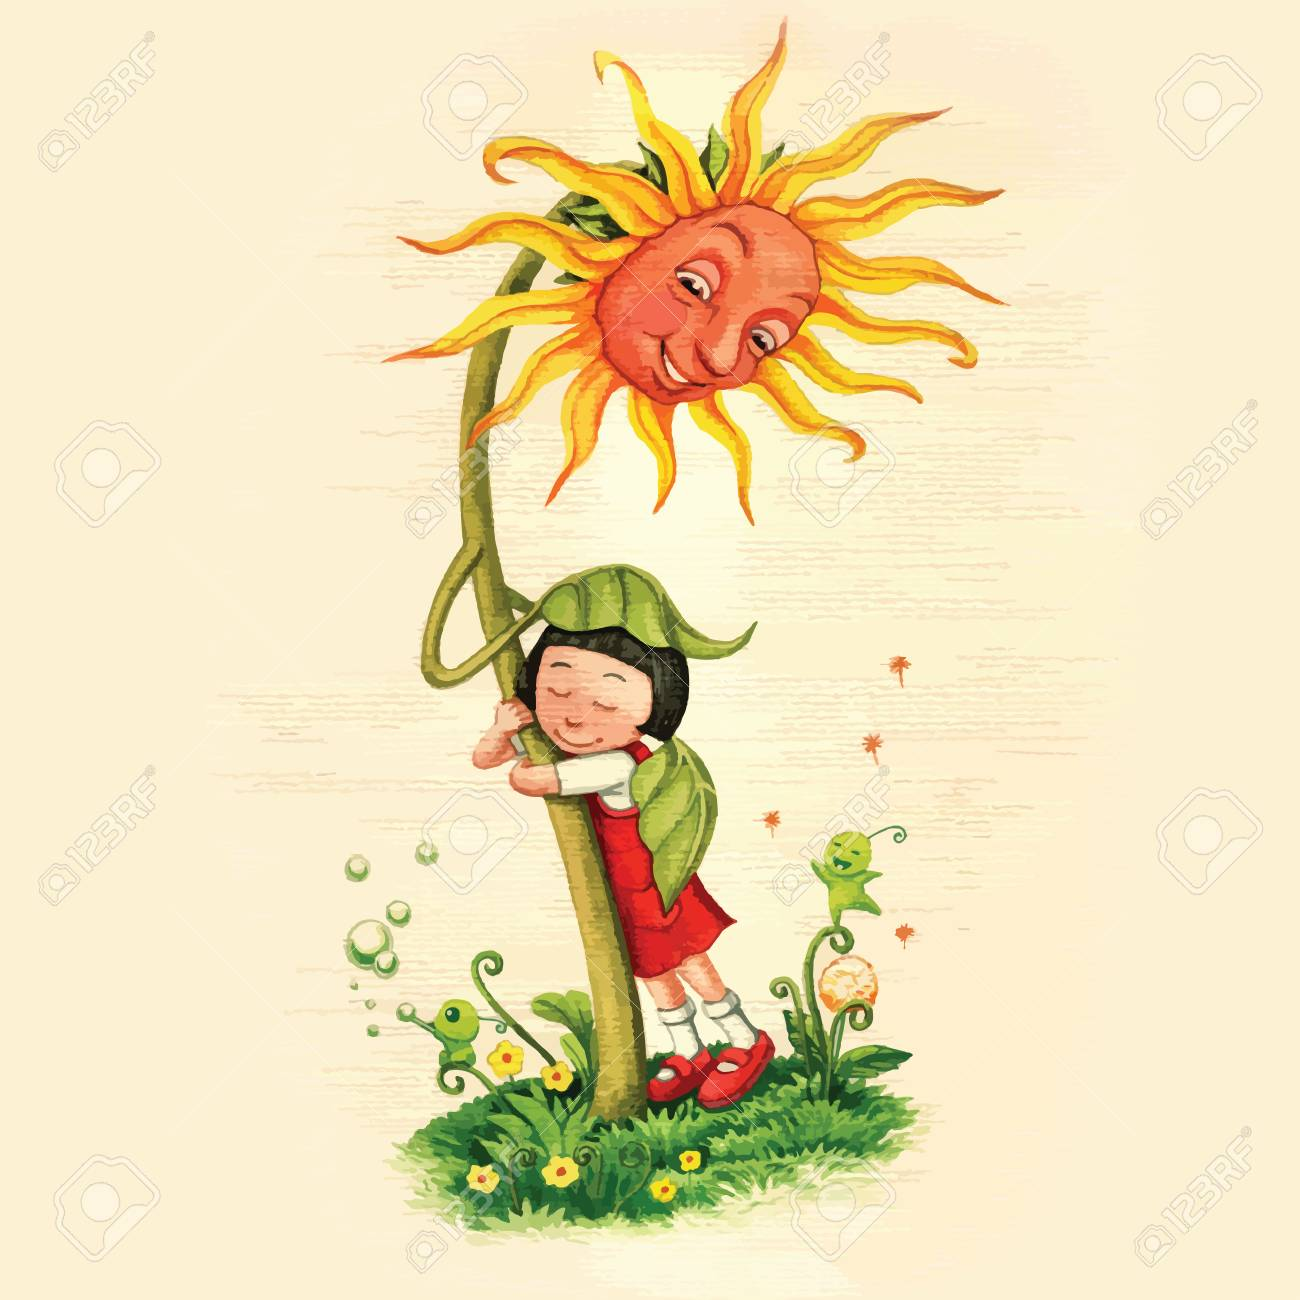 Artistic watercolor hand drawn fairytale sunflower hugging a girl with care and love. Children illustration. - 93209623